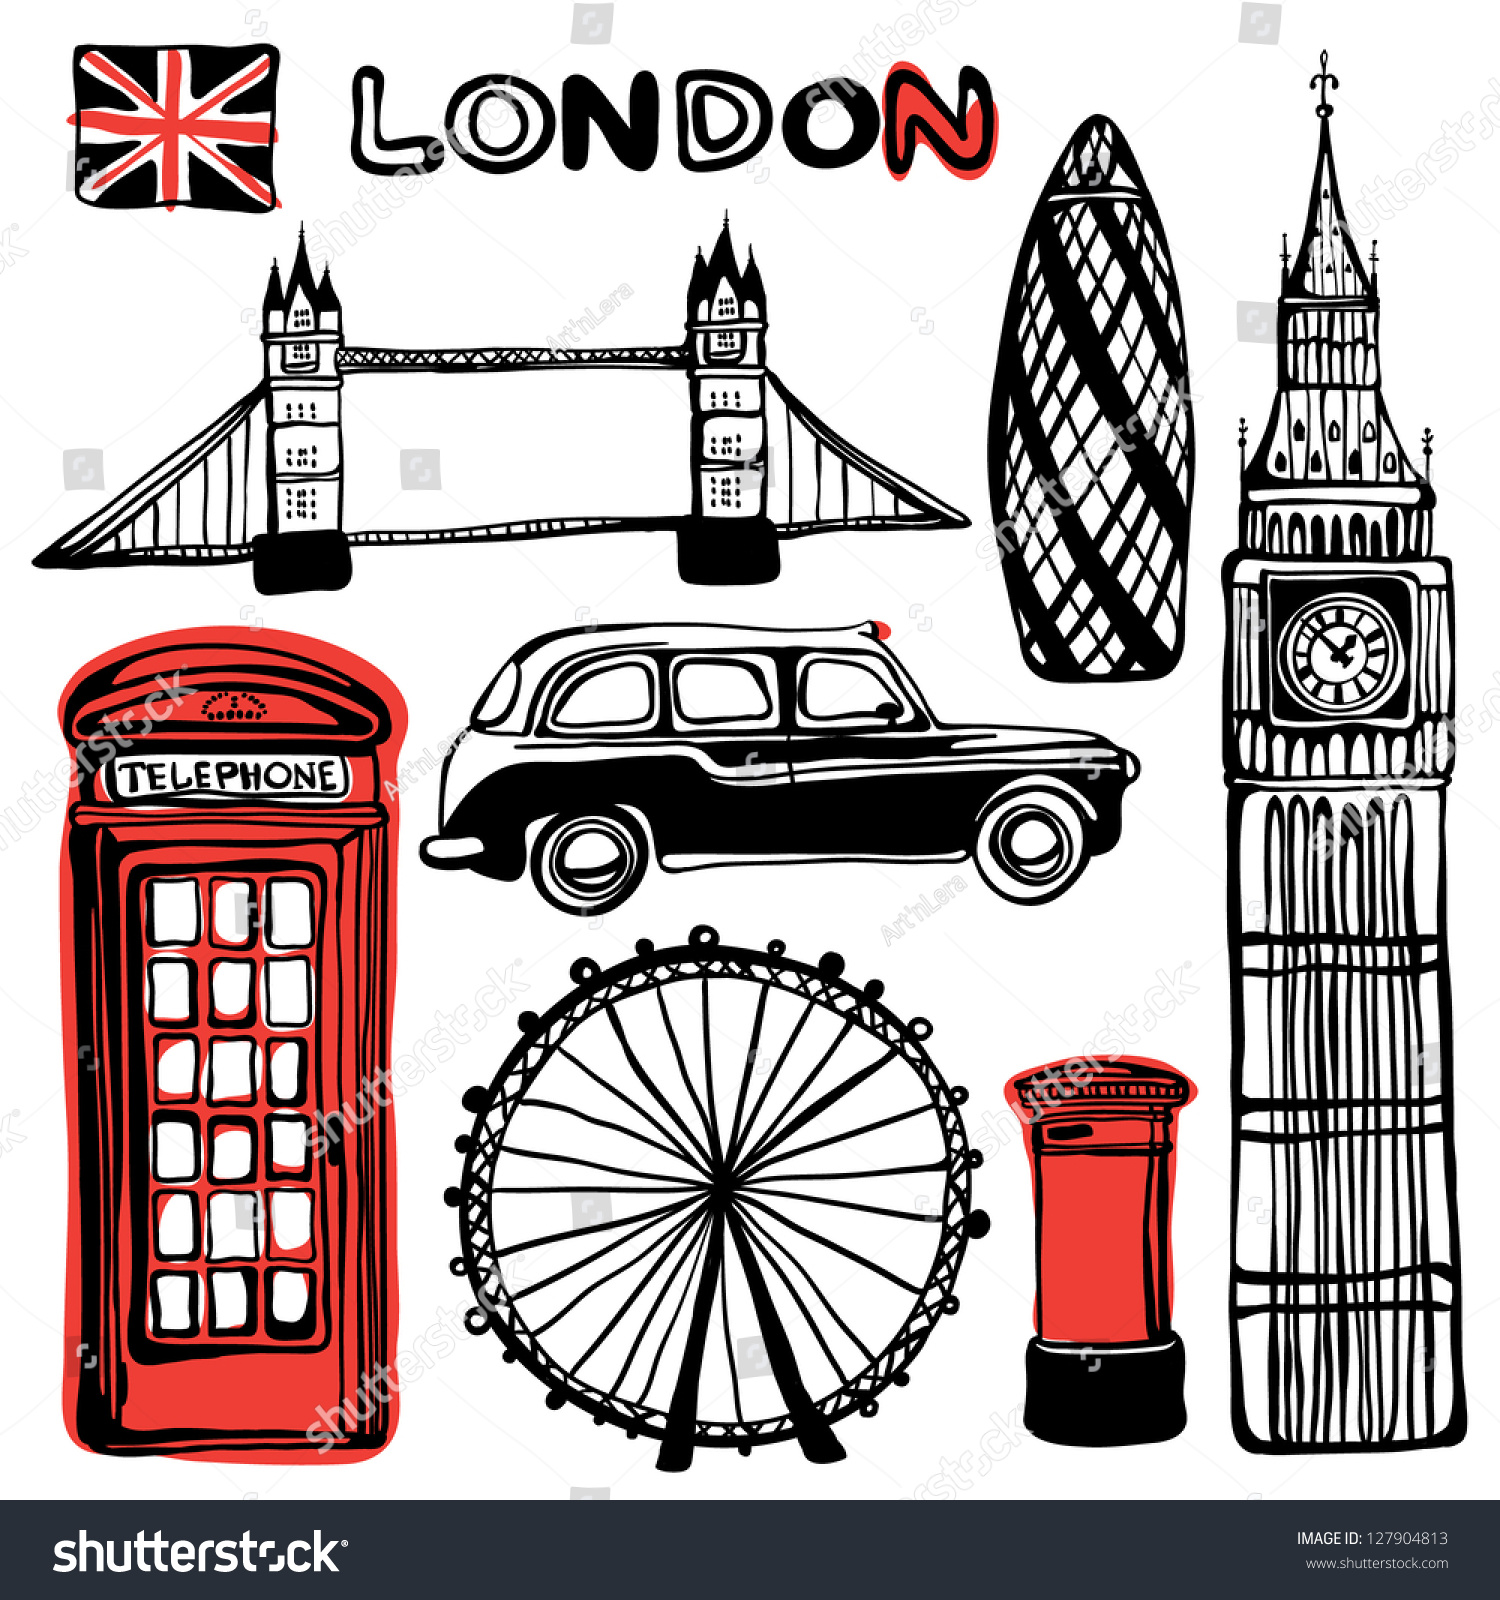 Country Music City Stock Photos Country Music City Stock: London Illustration Stock Vector 127904813